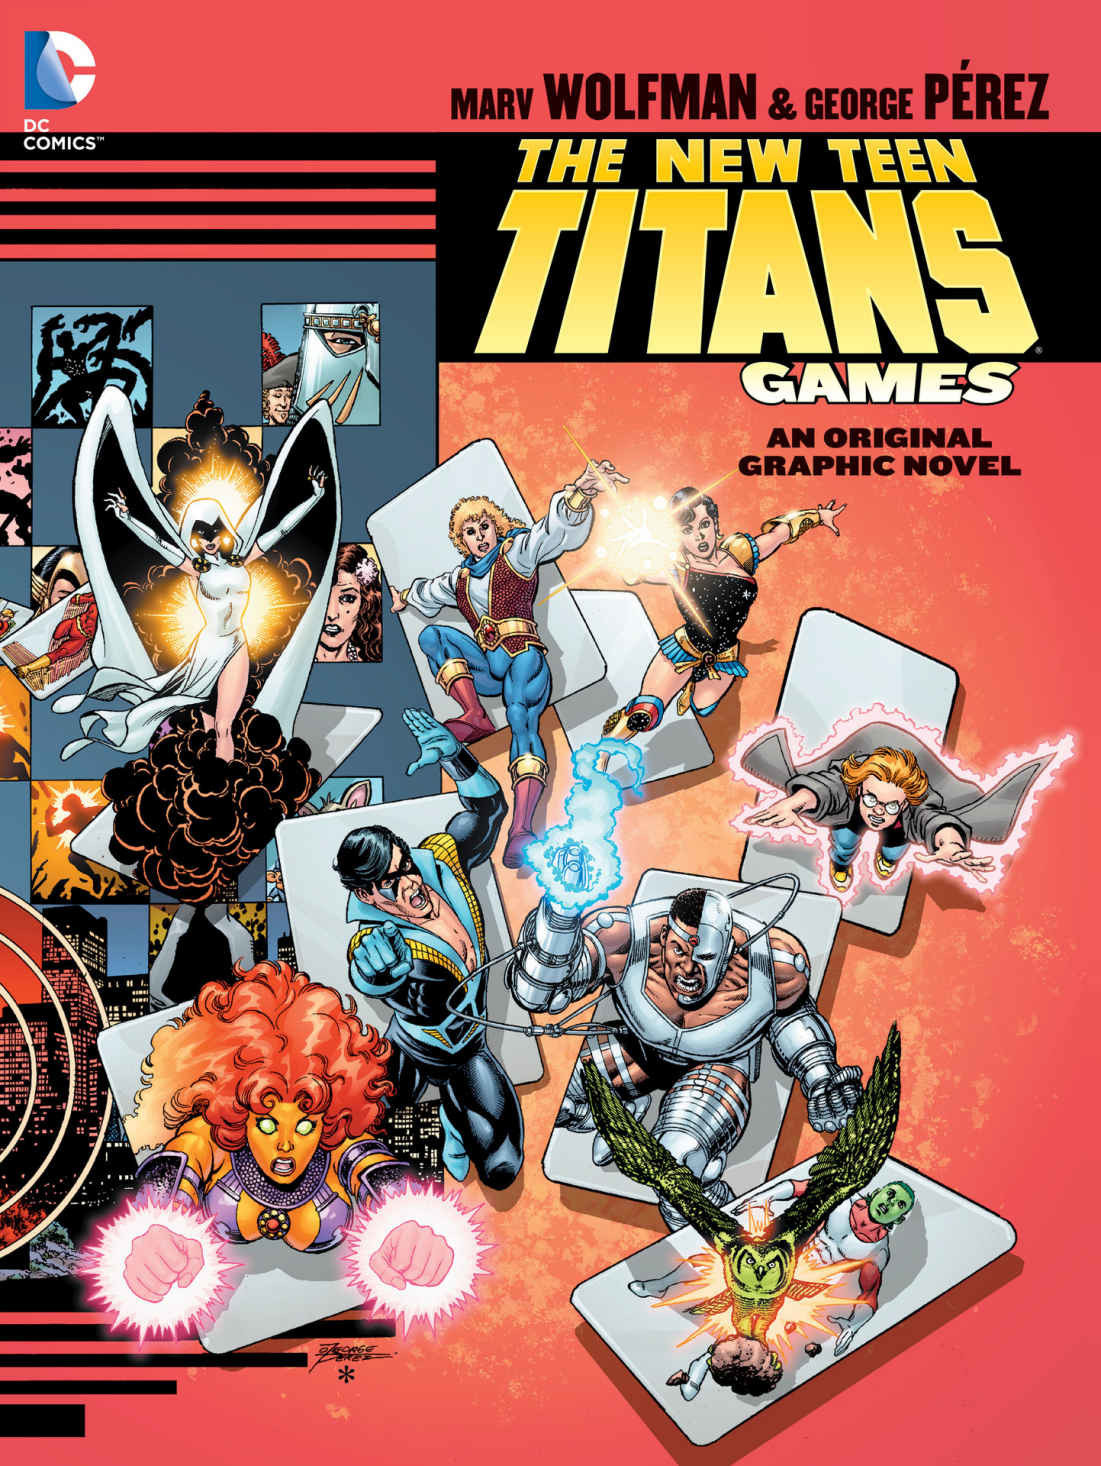 New Teen Titans Games OGN by Marv Wolfman and George Perez